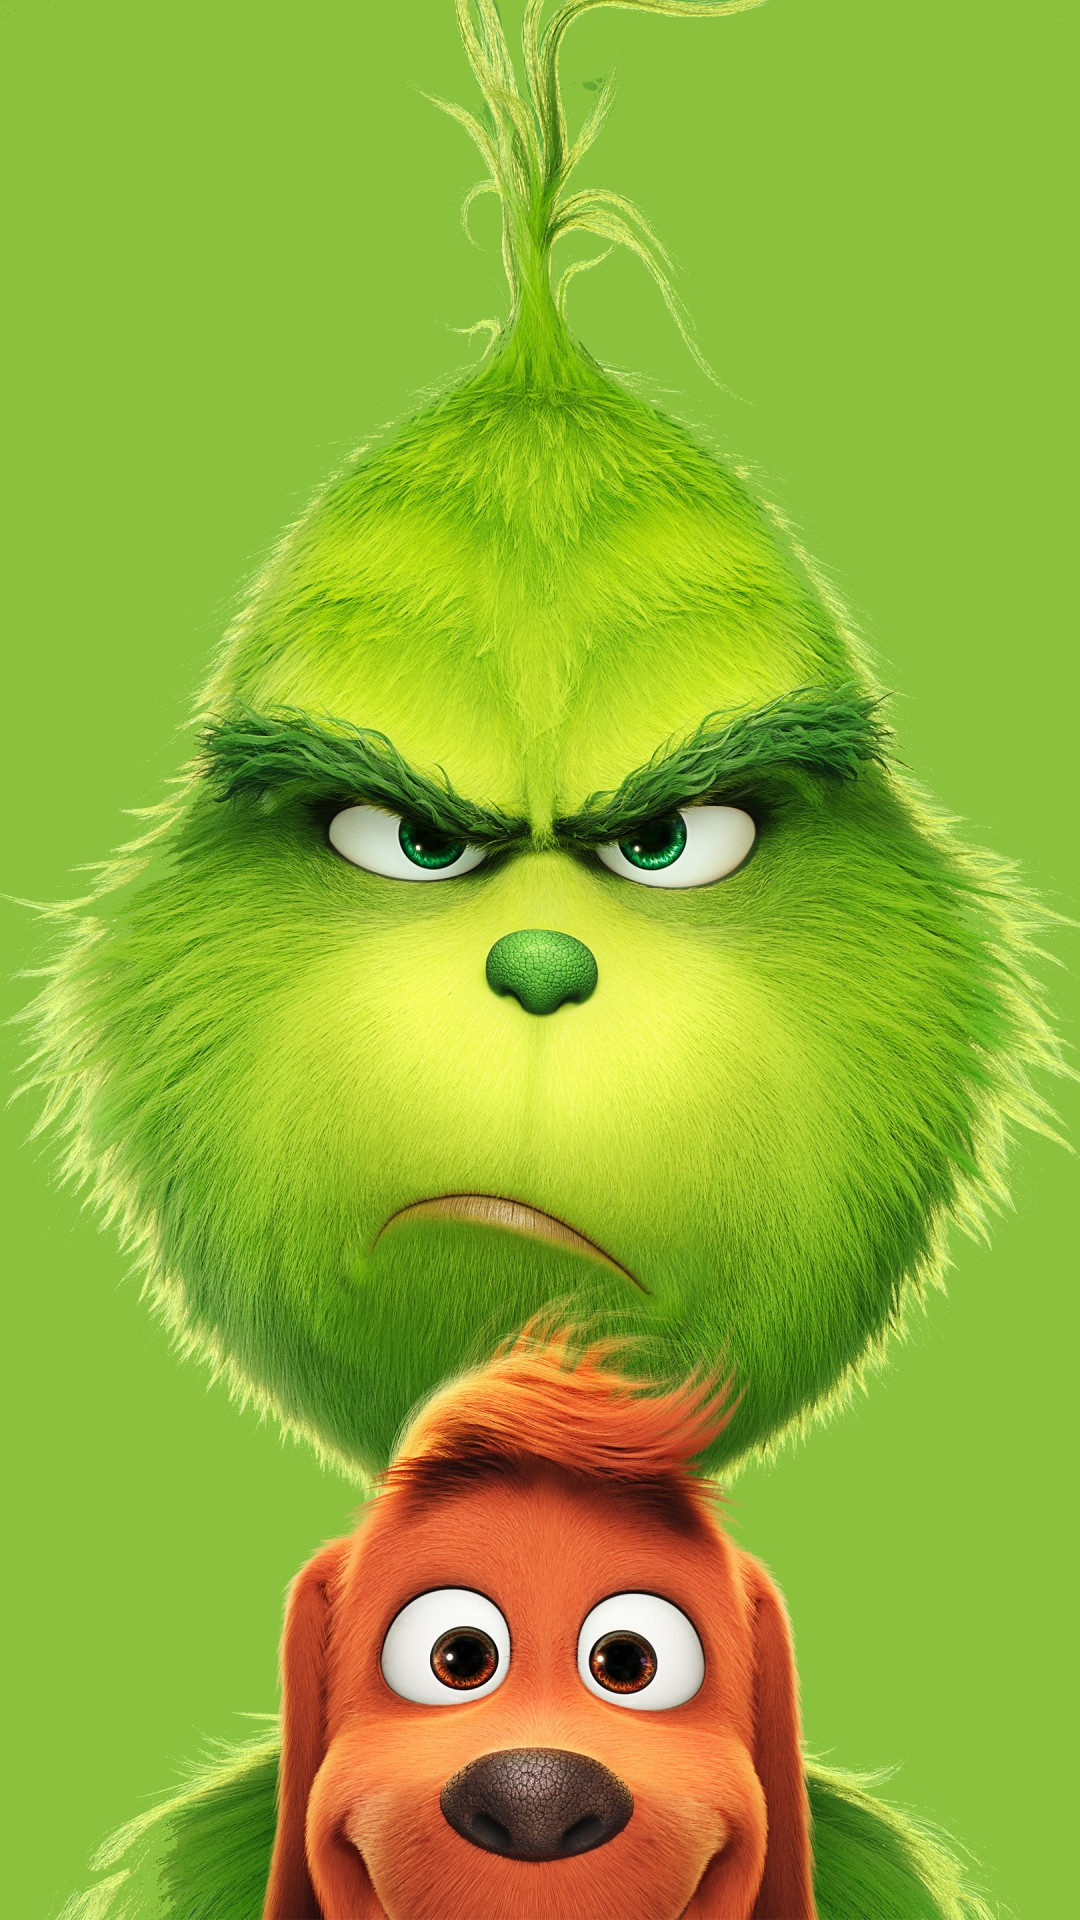 Wallpaper How the Grinch Stole Christmas, 5k, Movies #17758 - Page 227